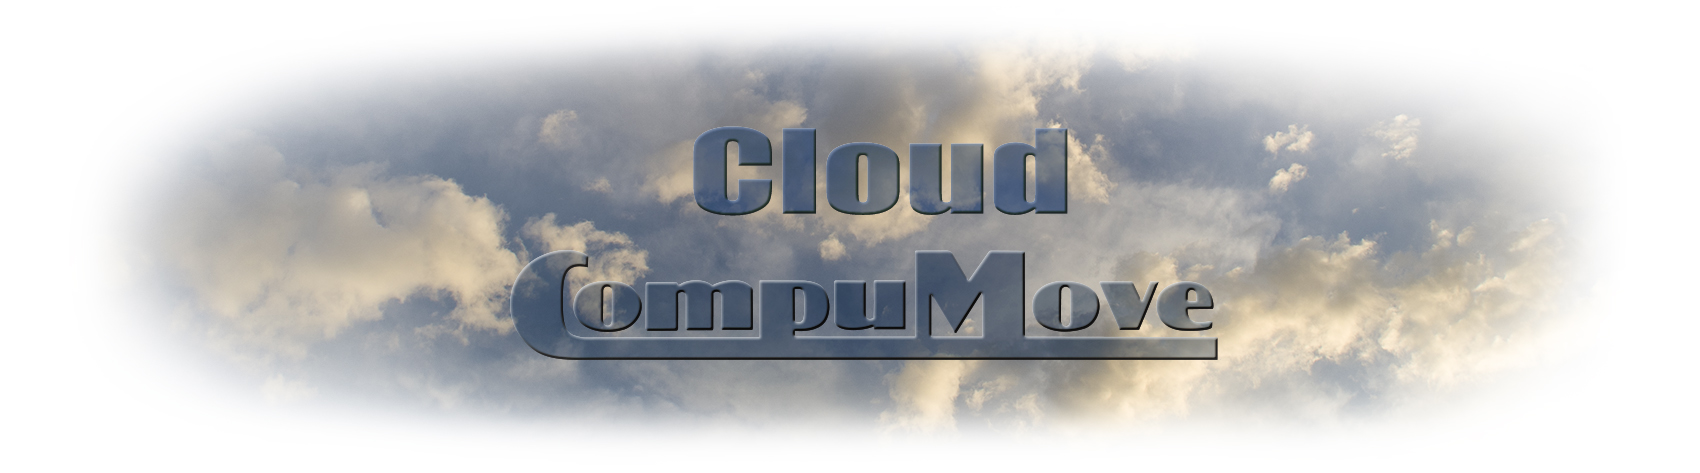 Cloud Compumove